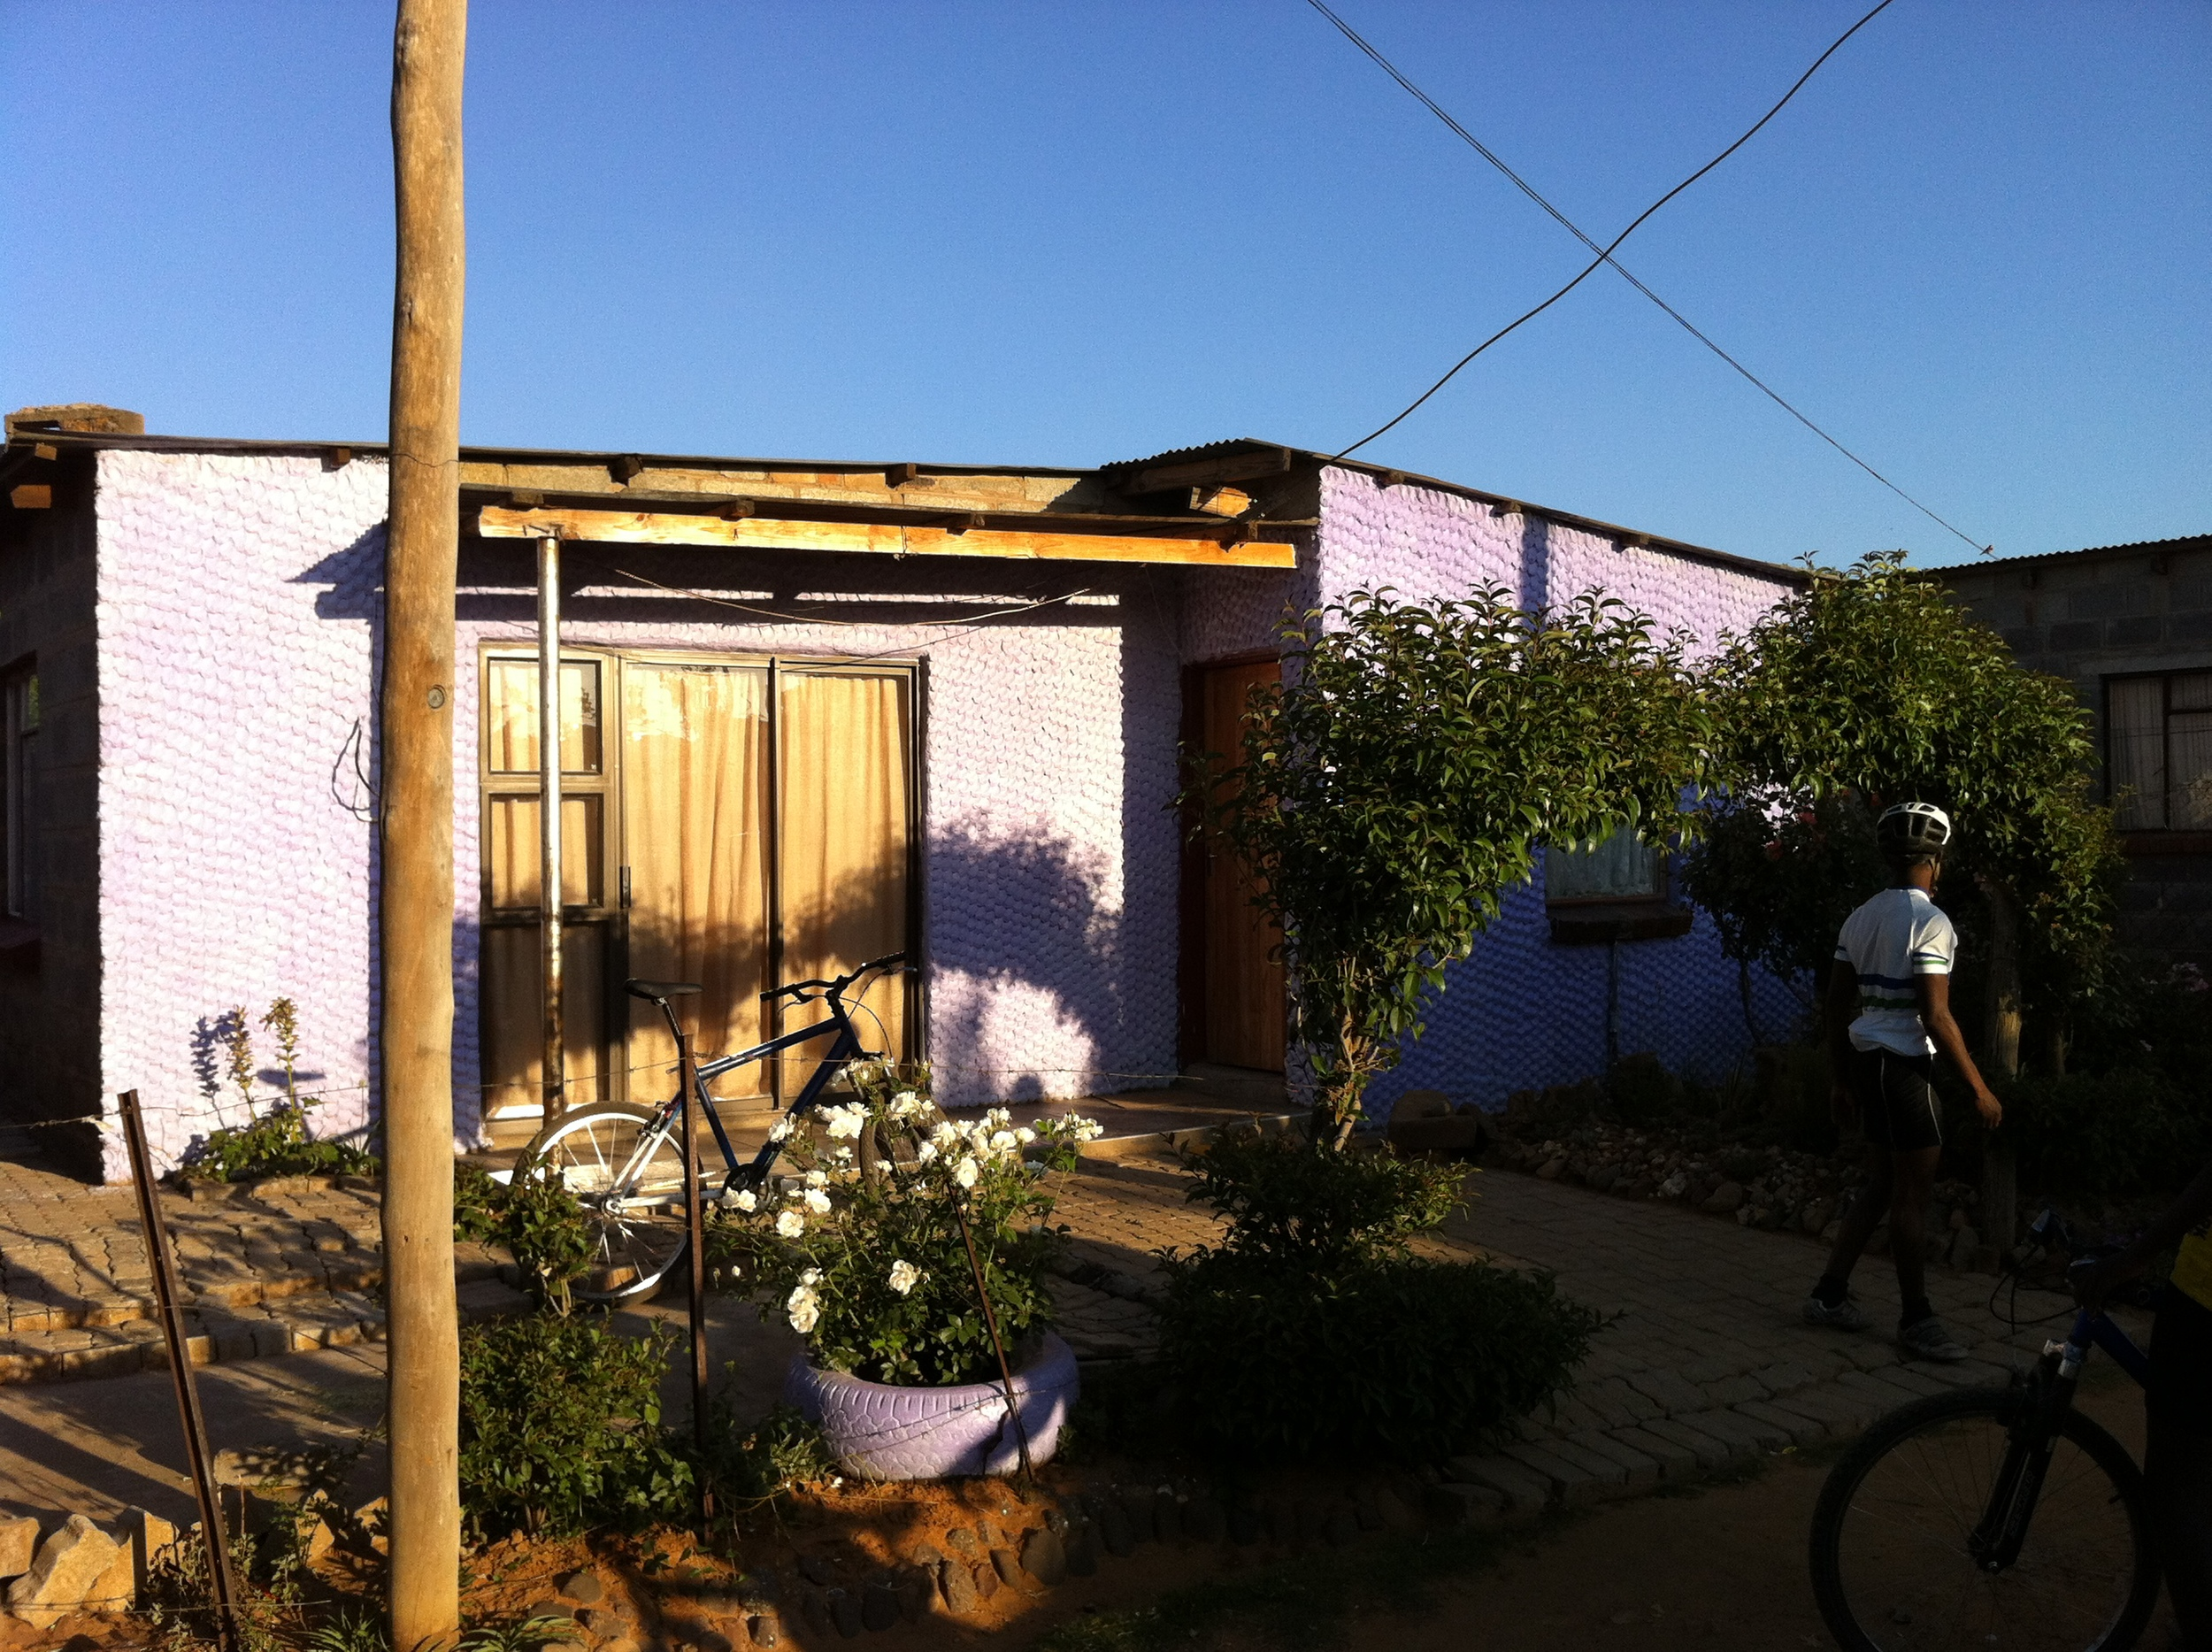 Tumi's mother's house and garden